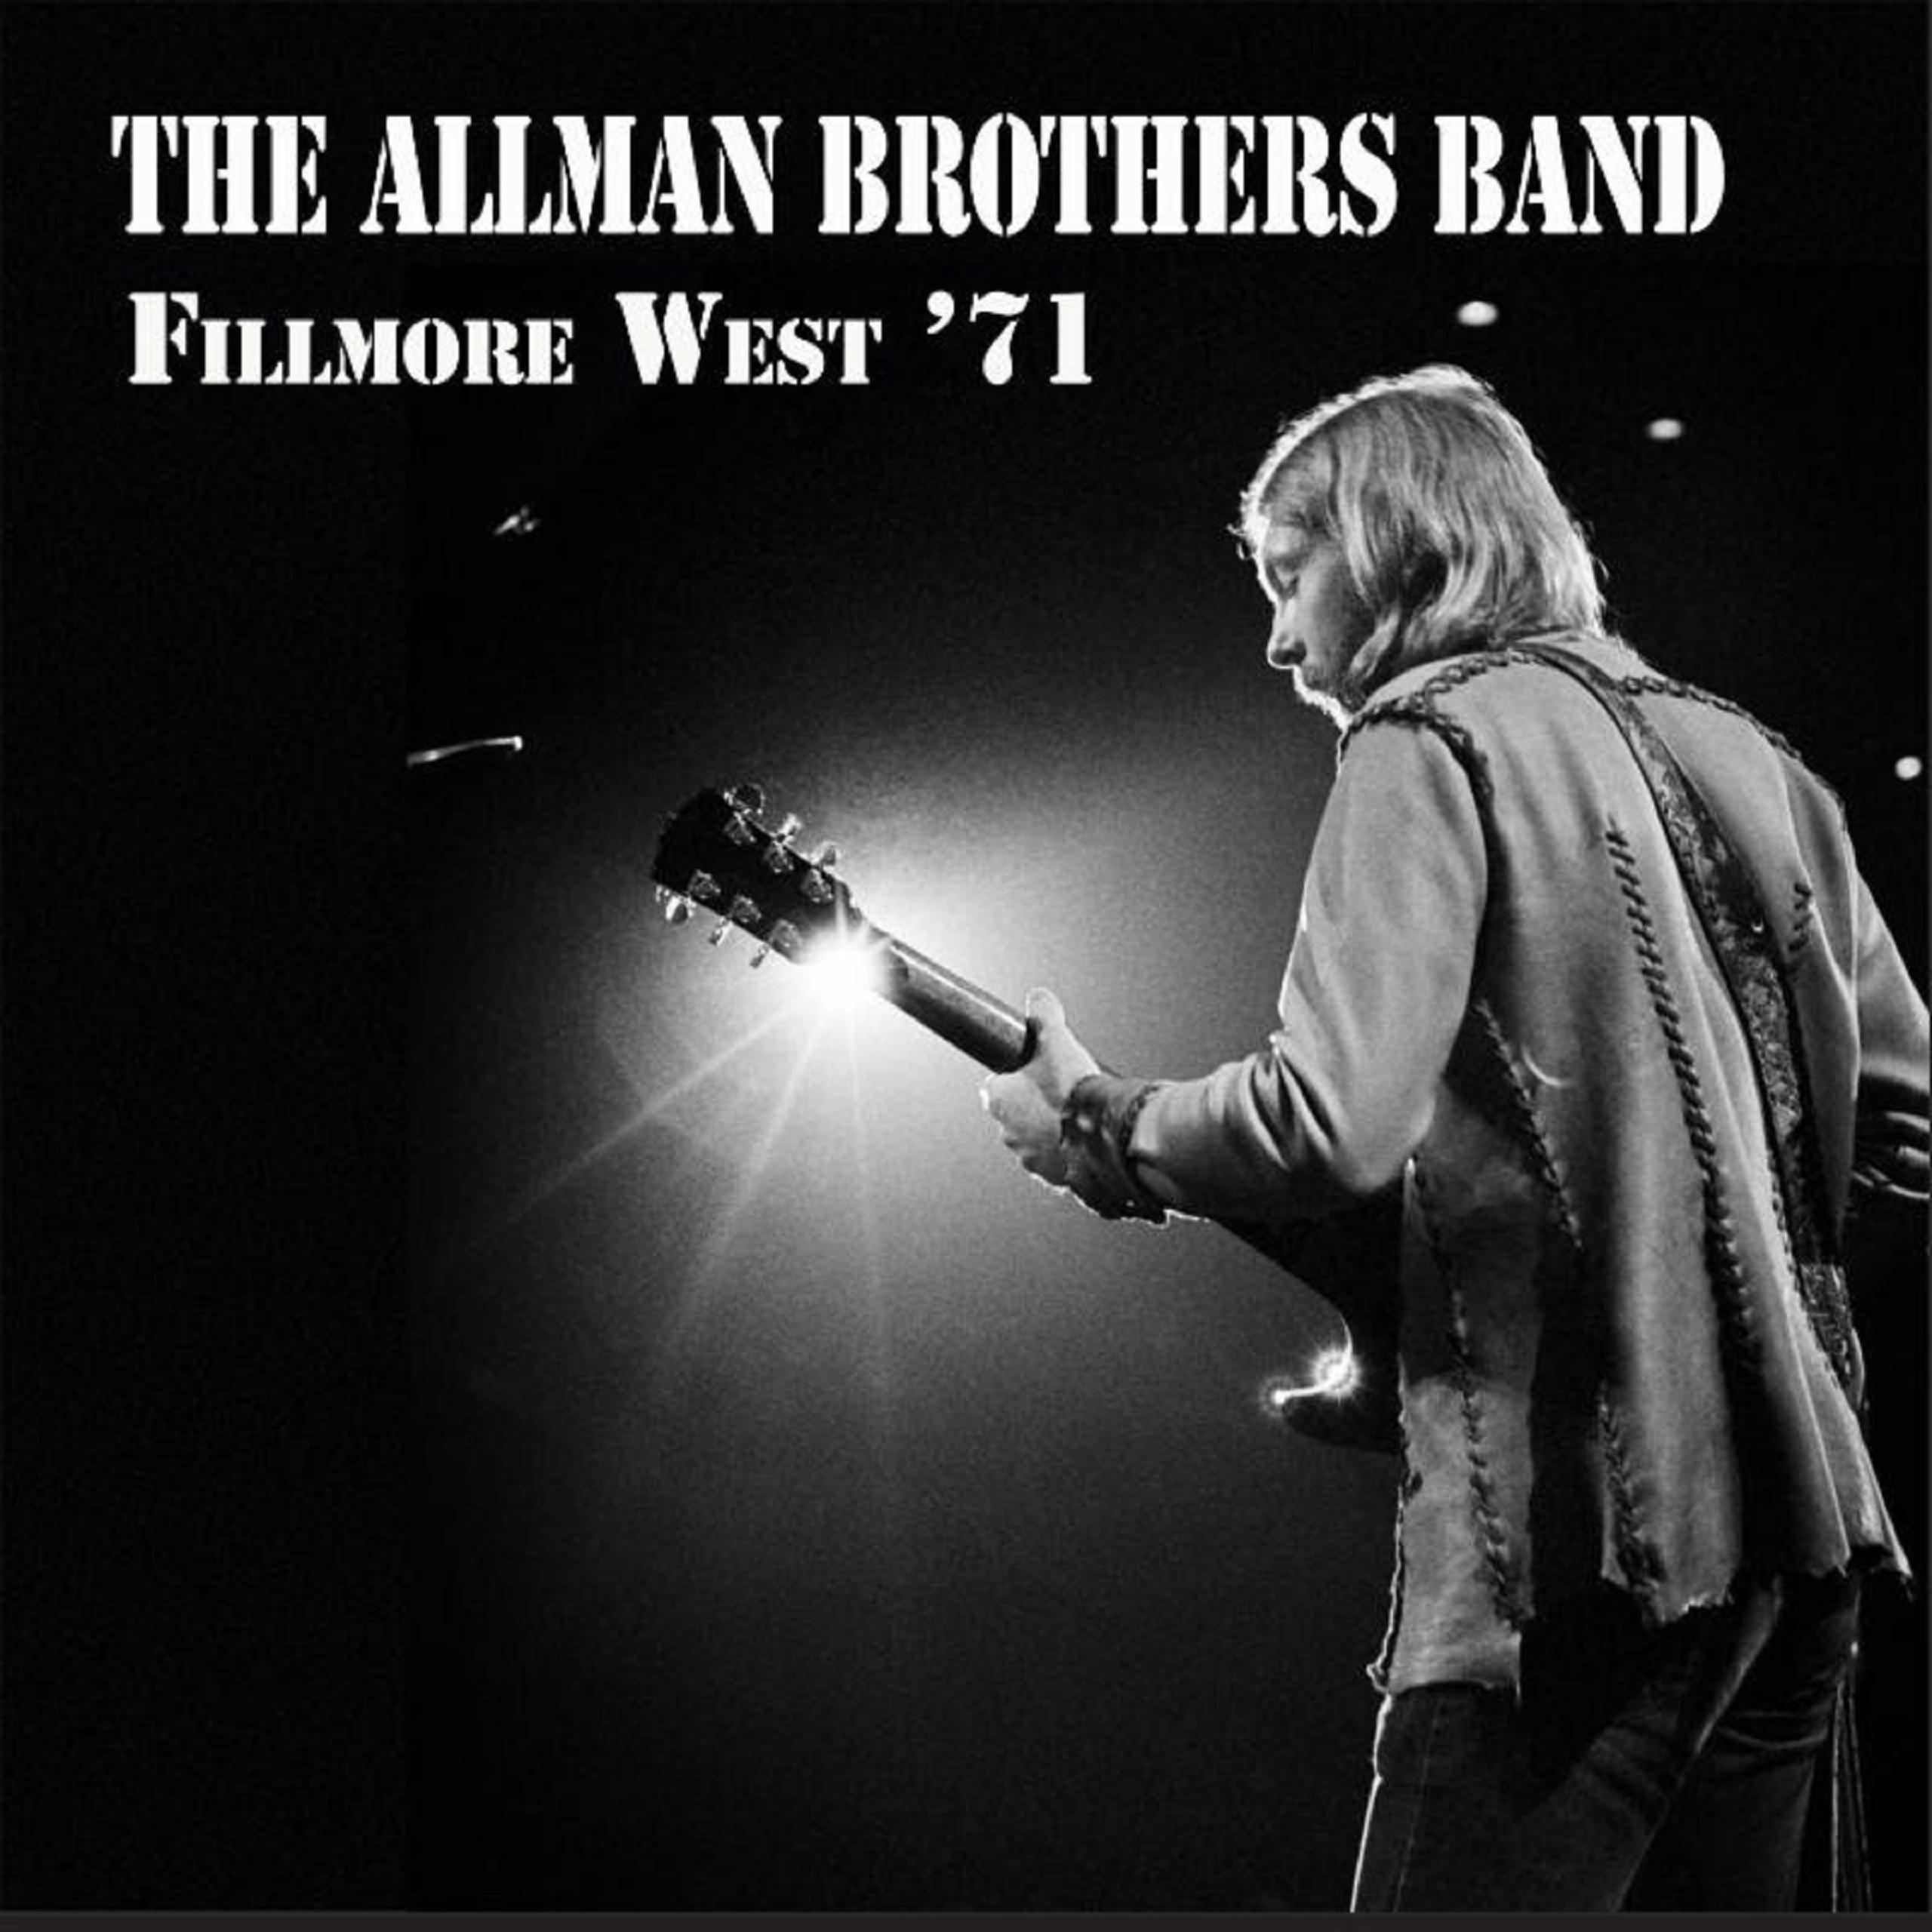 Allman Brothers Tour 2020 Allman Brothers Band 50th Anniversary: Fillmore West '71